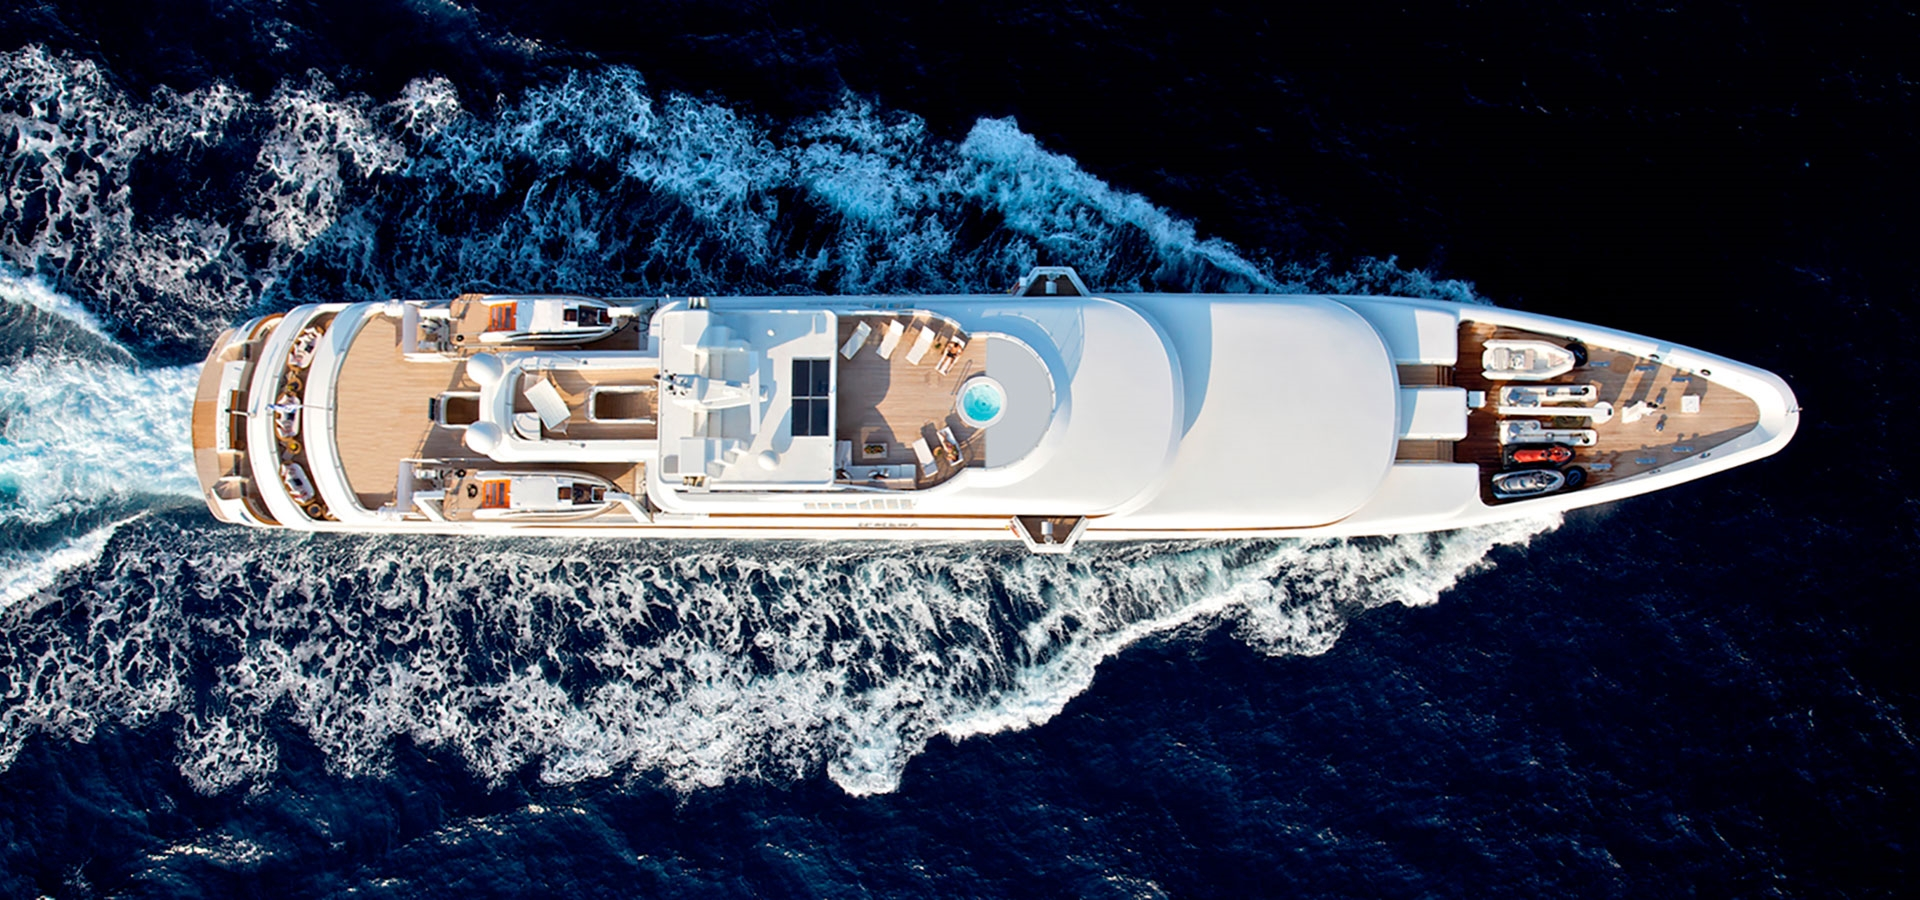 Leaders in the world of Yachting